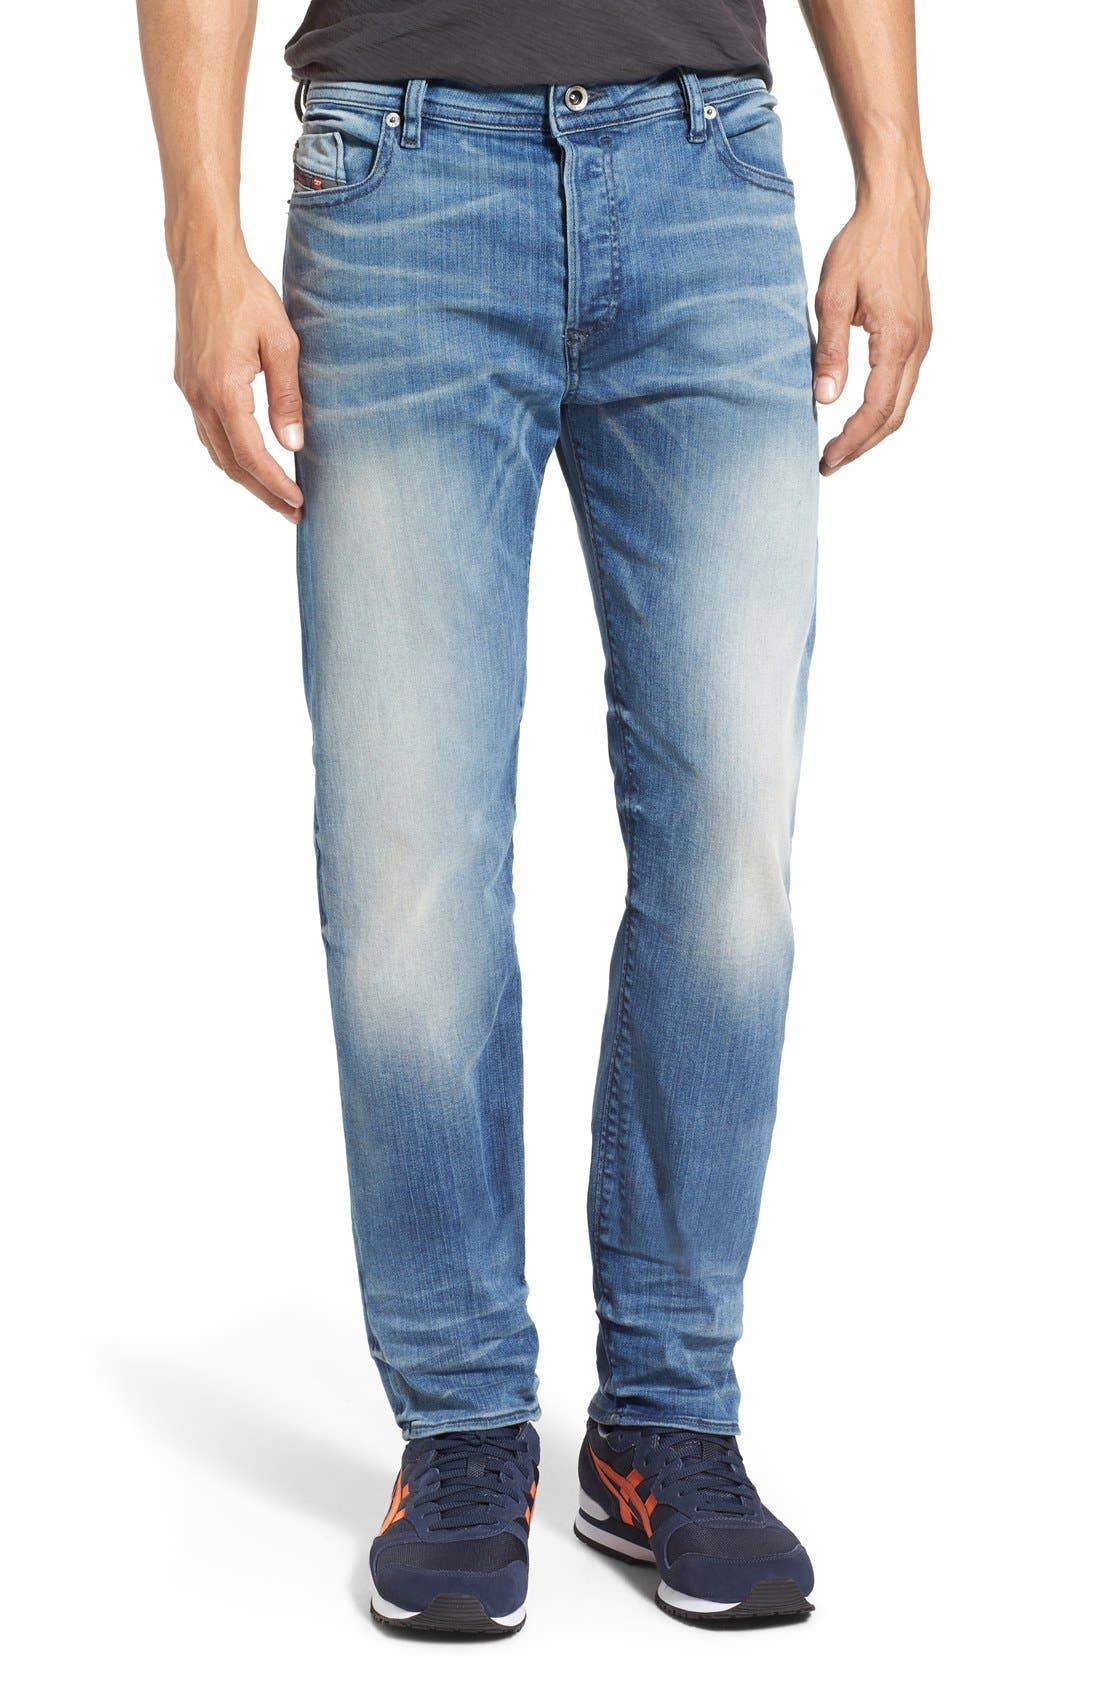 'Buster' Slim Straight Fit Jeans,                             Main thumbnail 1, color,                             400